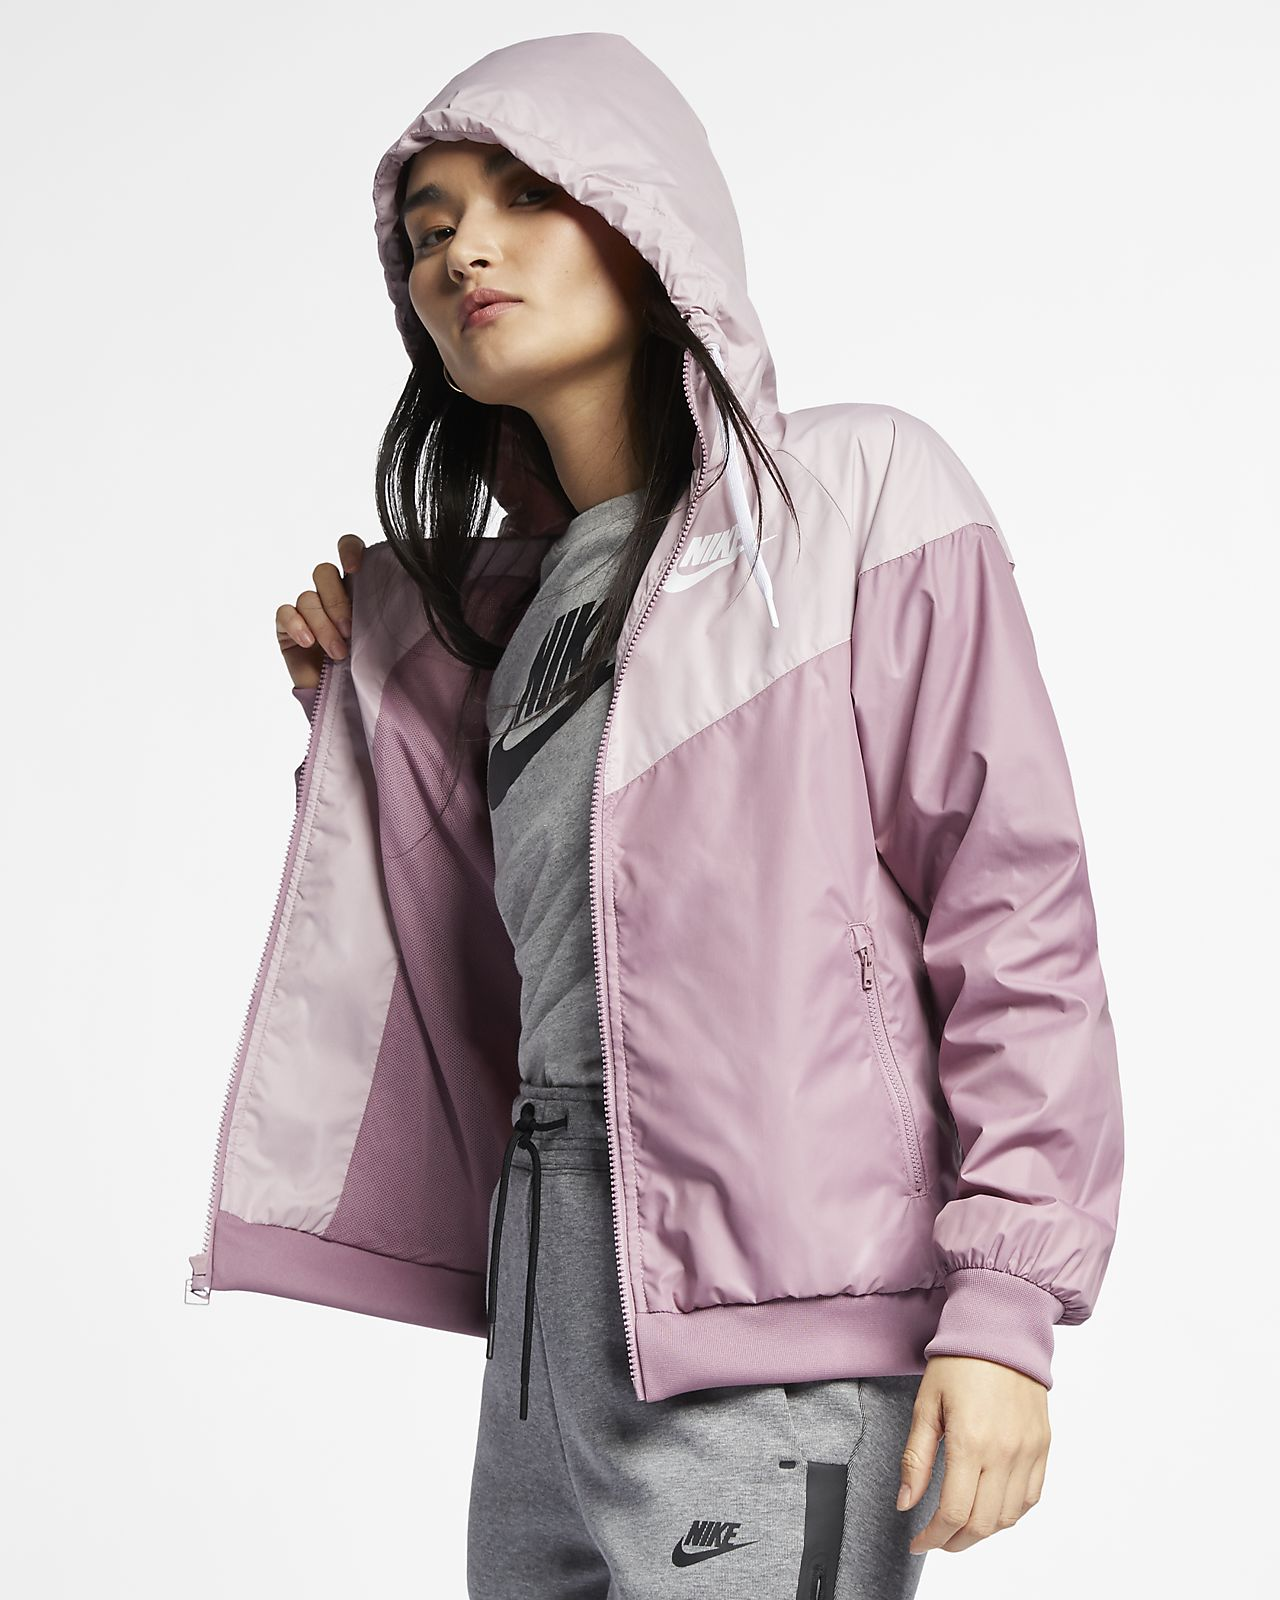 e2da552c21 Low Resolution Nike Sportswear Windrunner Women s Windbreaker Nike  Sportswear Windrunner Women s Windbreaker